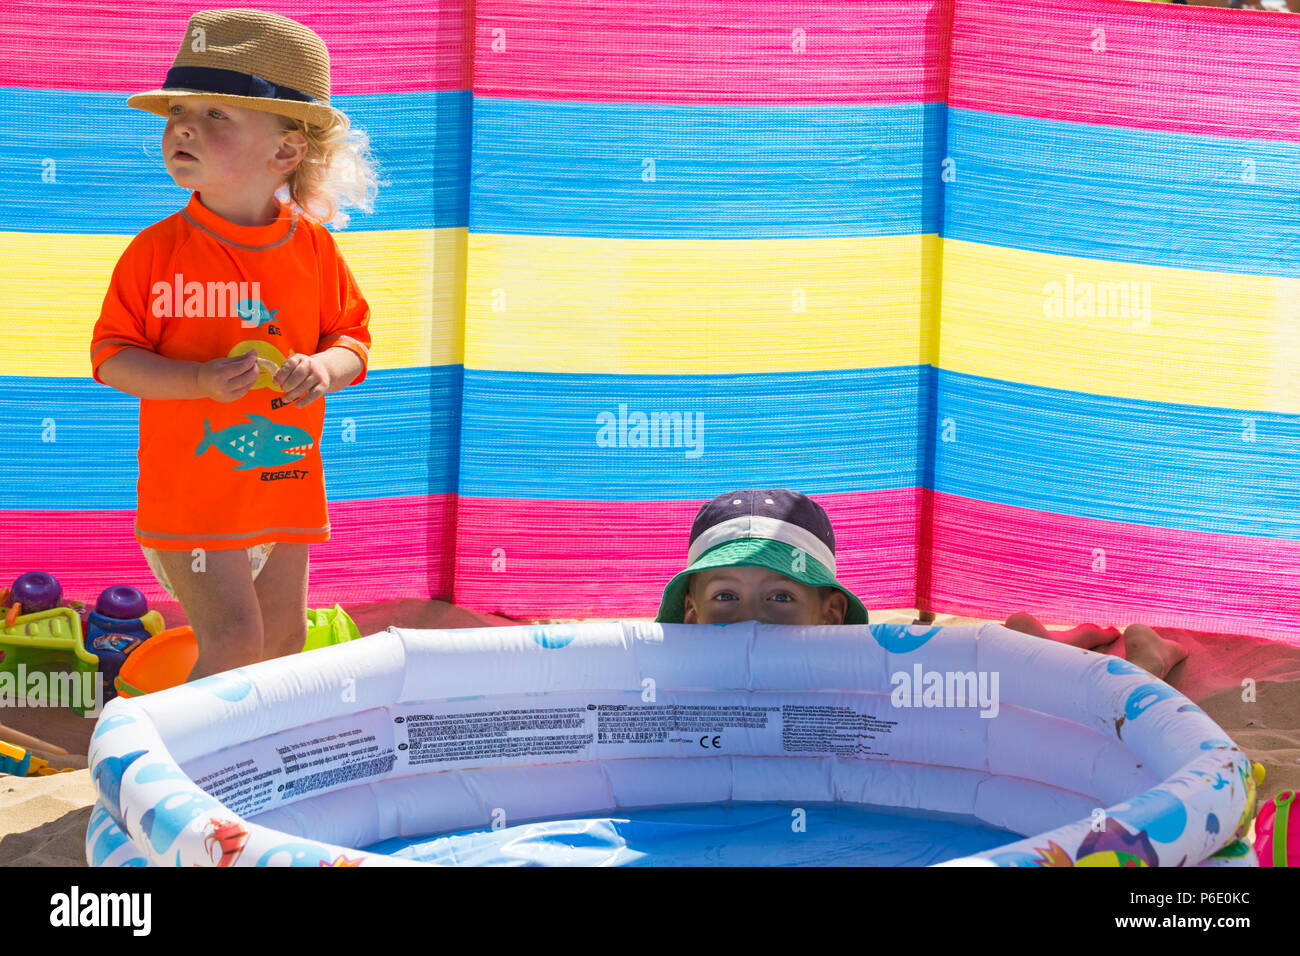 Bournemouth, Dorset, UK. 30th June 2018. UK weather: the heatwave continues and another hot sunny day at Bournemouth beaches. Mid morning and the beaches are getting packed and car parks full as sunseekers head to the seaside. A slight breeze makes the heat more bearable. Six and two year old boys wait patiently for dad to fill the paddling pool! Credit: Carolyn Jenkins/Alamy Live News - Stock Image